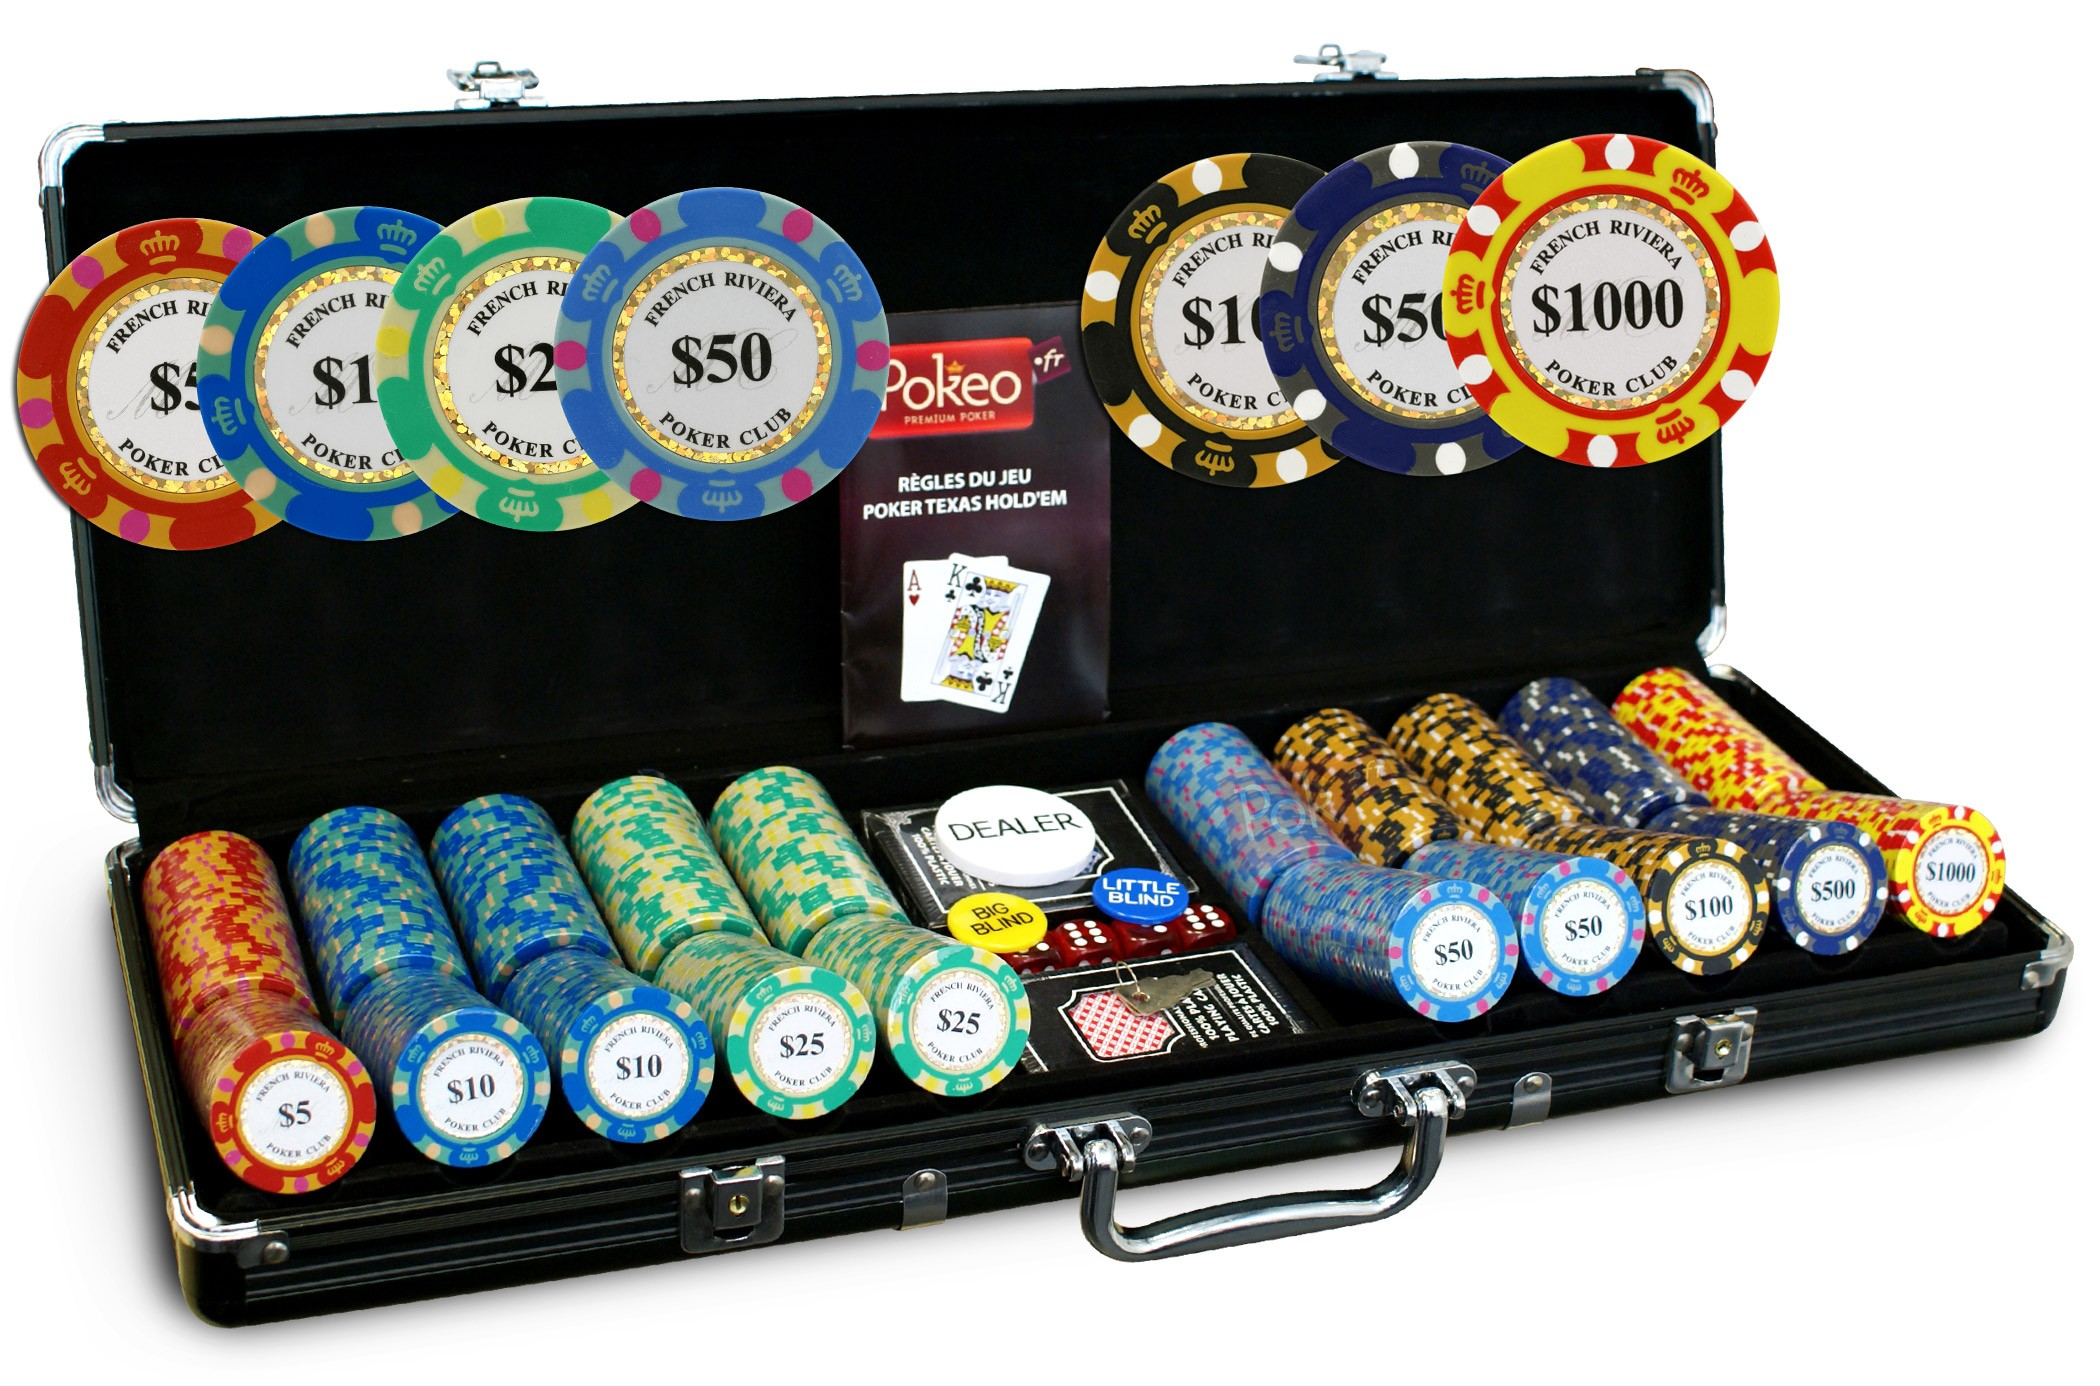 regles poker guide d 39 achat materiel de poker. Black Bedroom Furniture Sets. Home Design Ideas